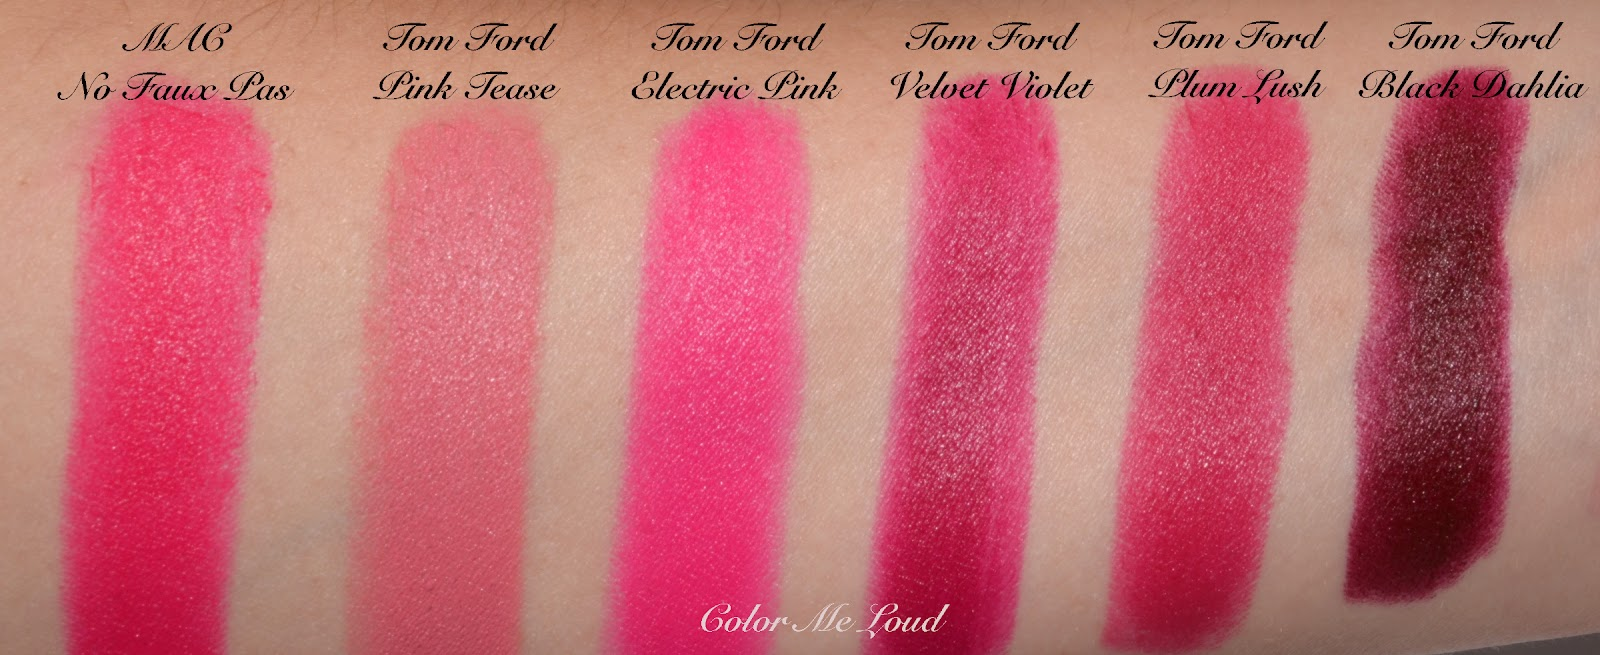 Lip Color by Tom Ford #19